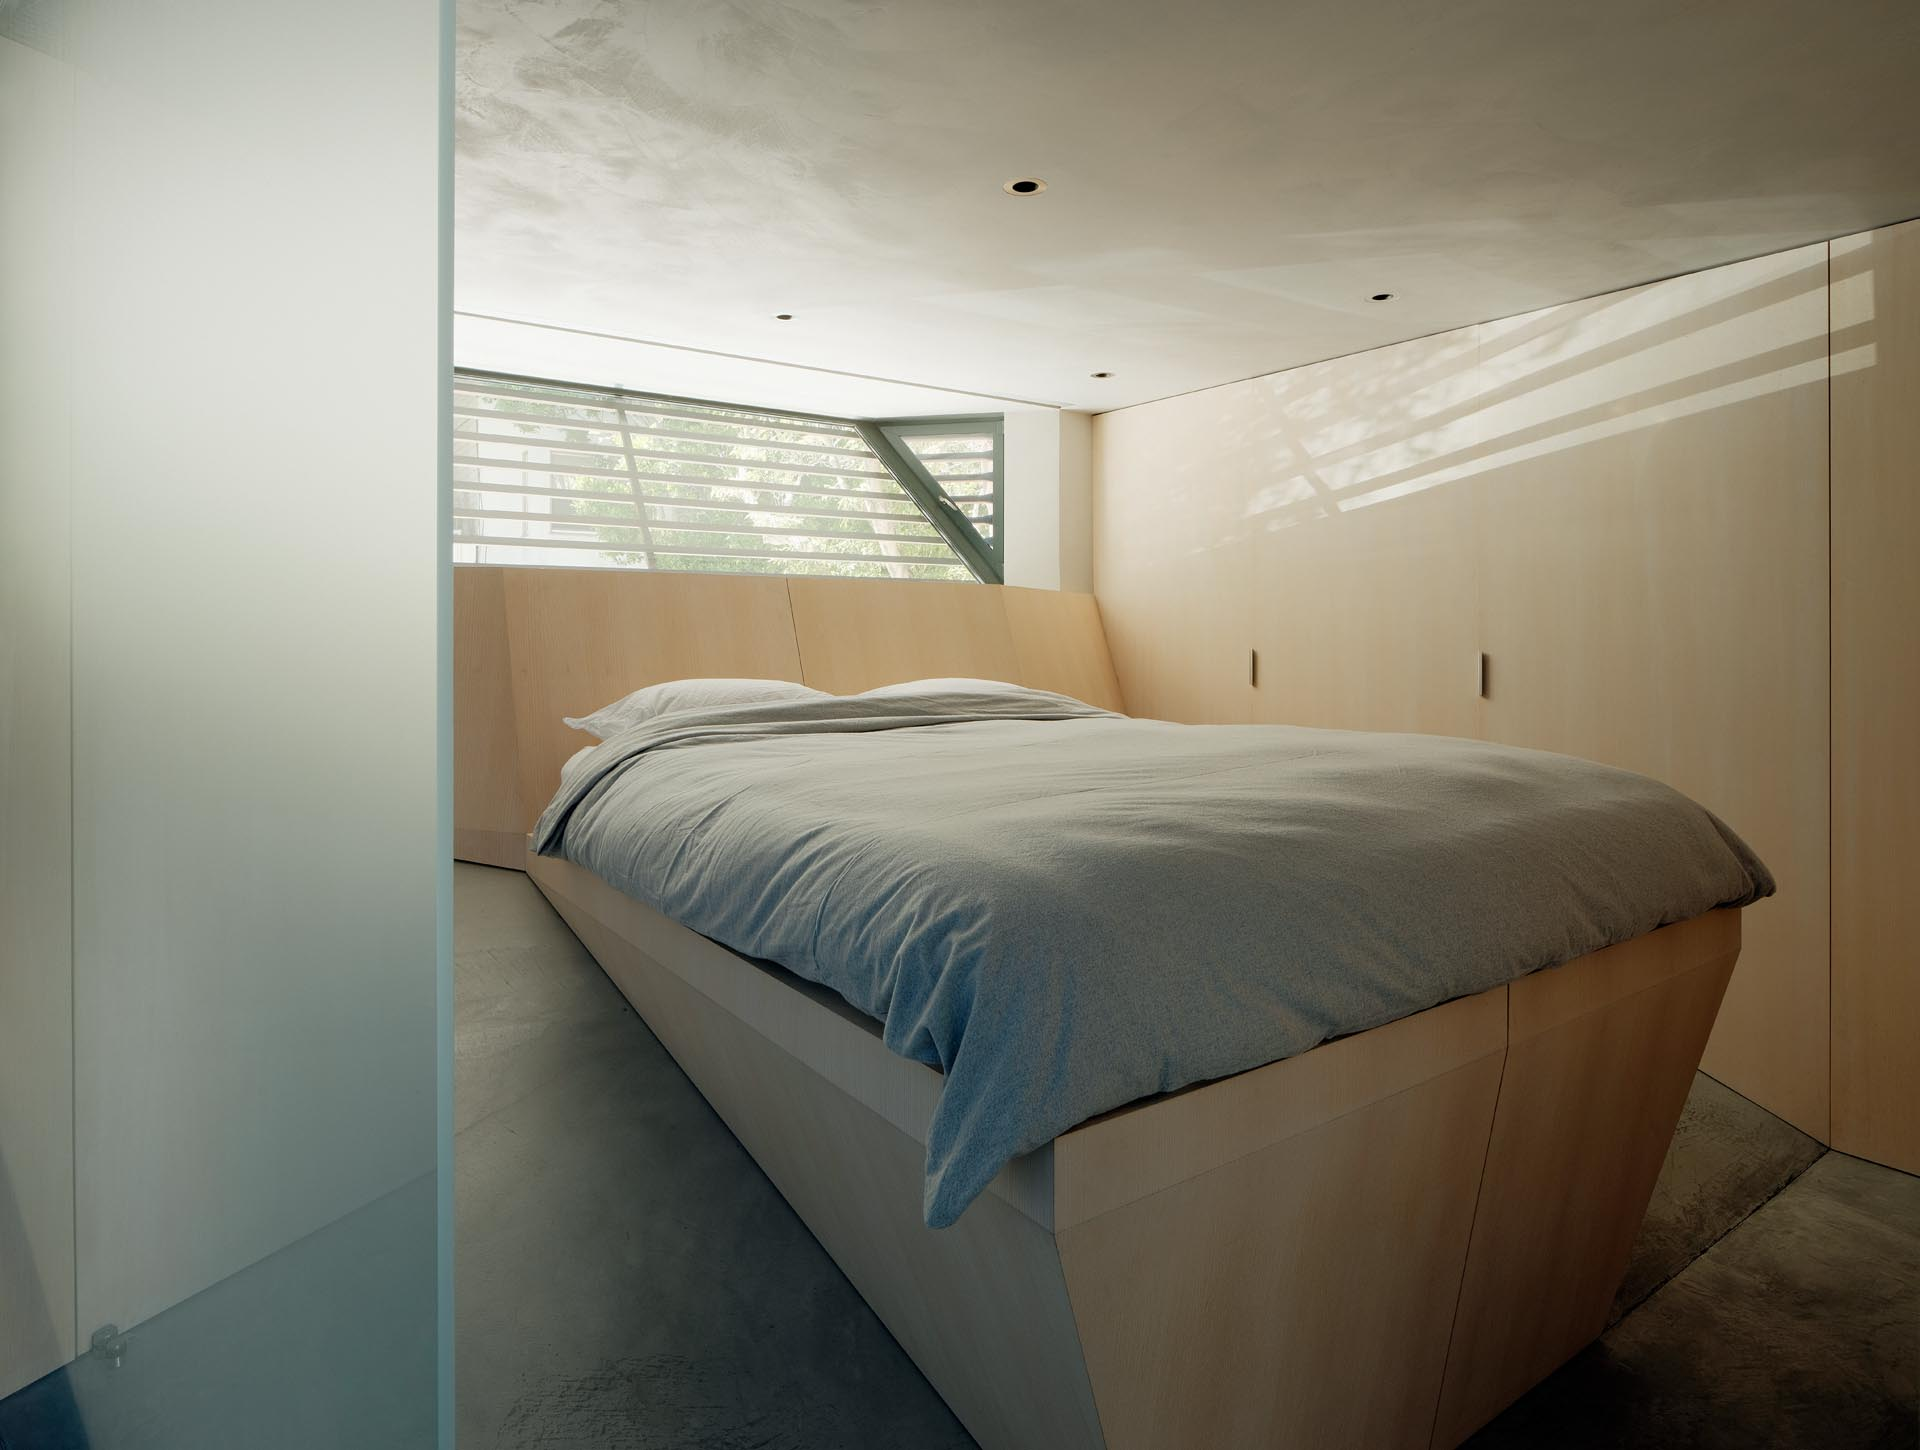 A modern bedroom with a custom designed angled wood bed frame that allows the bed to be level.